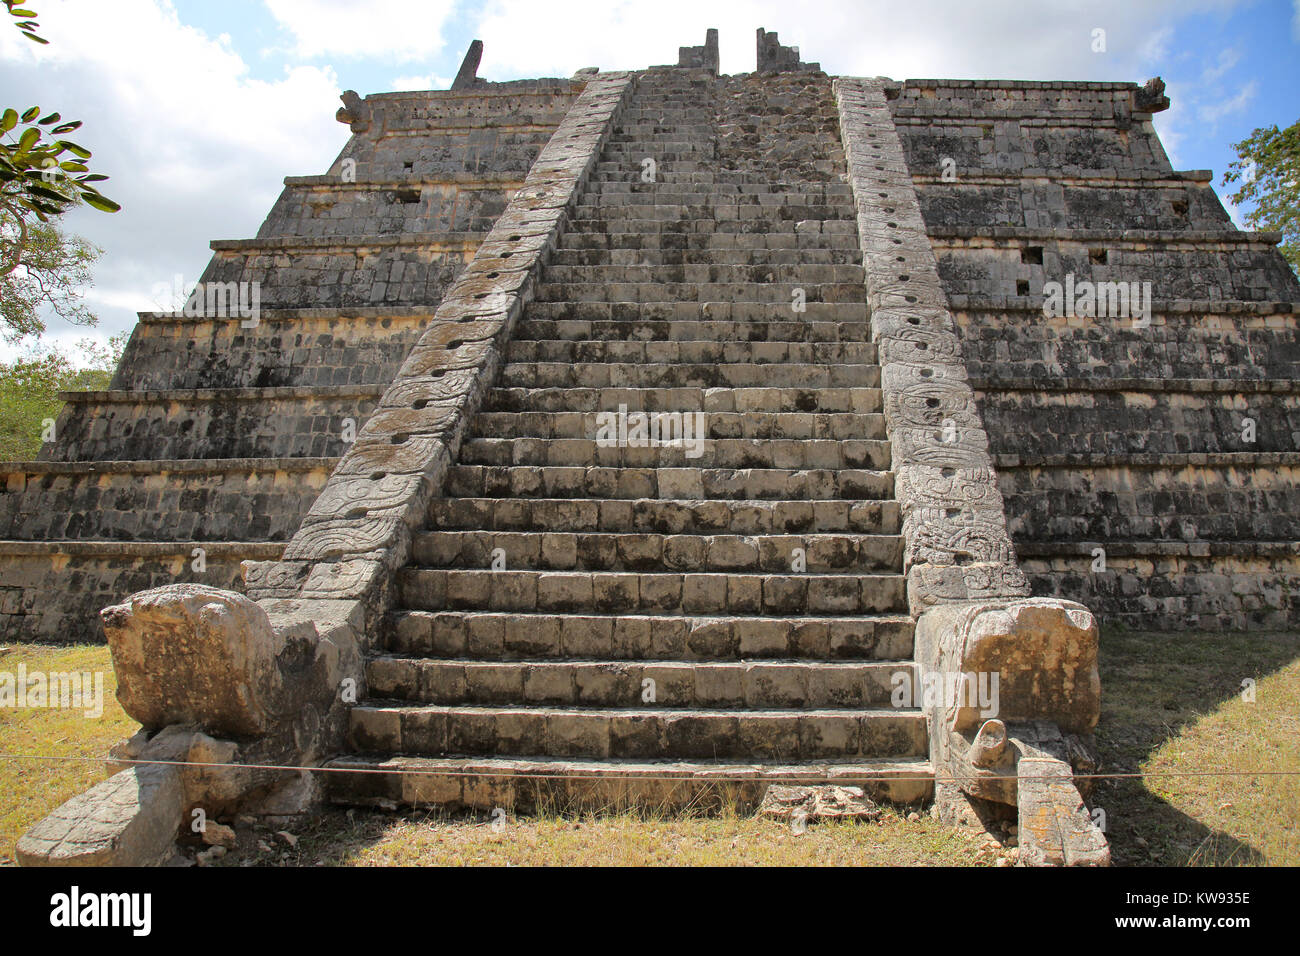 the ossuary at chicken itza mexico - Stock Image